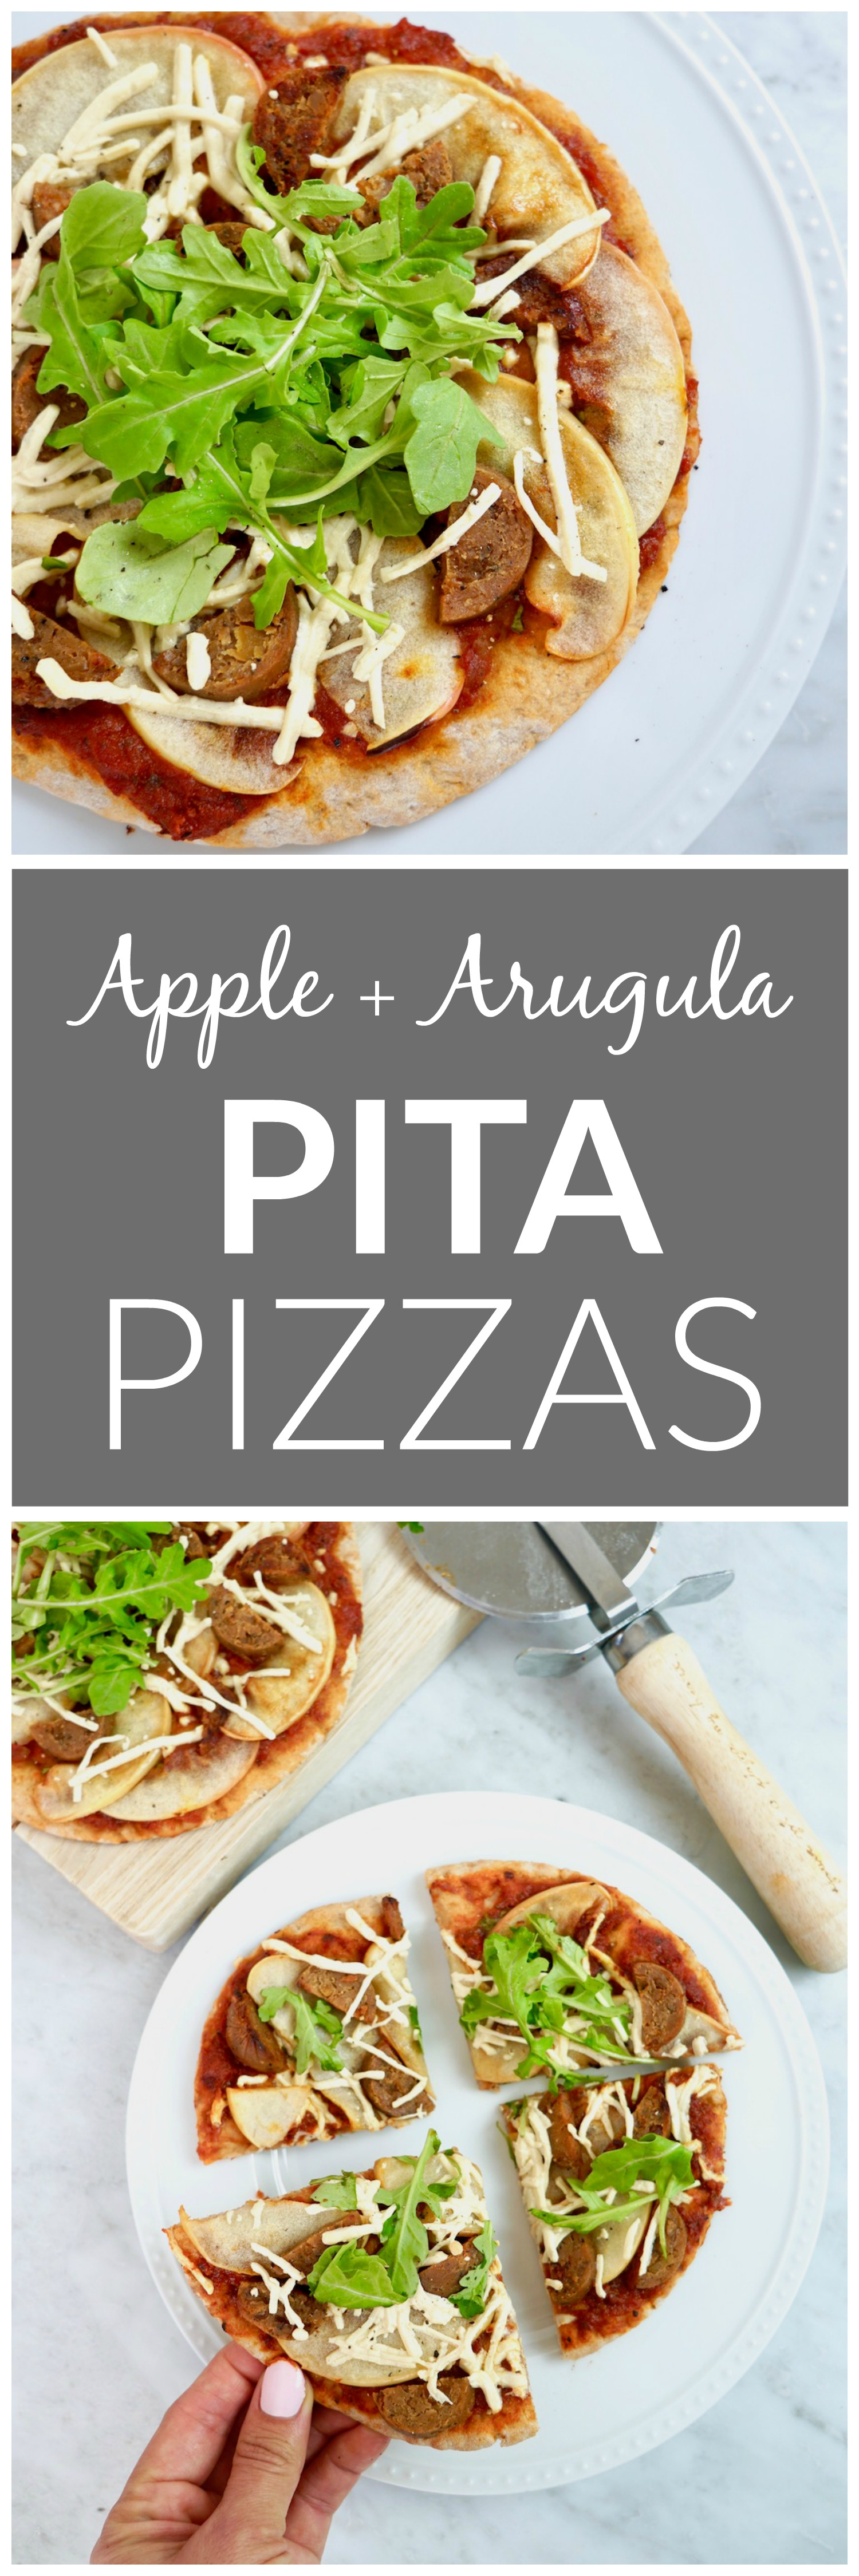 Apple + Arugula Pita Pizzas - vegan